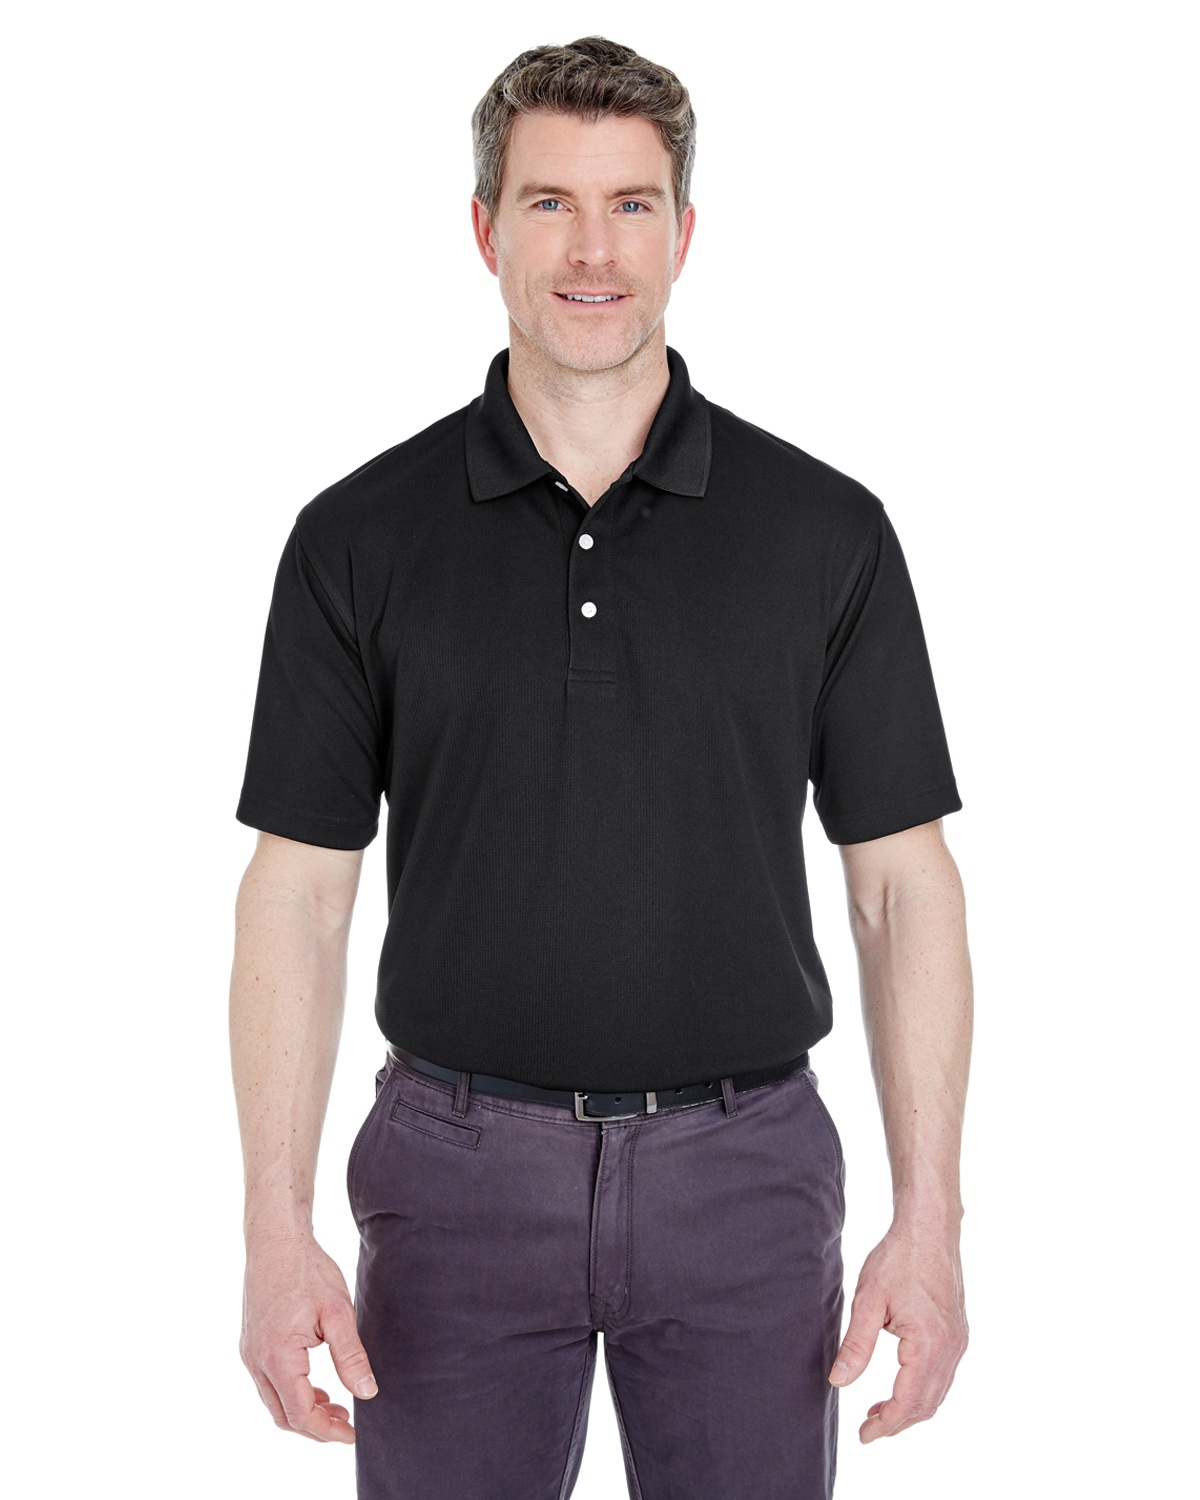 'UltraClub 8445 Men's Cool & Dry Stain-Release Performance Polo'